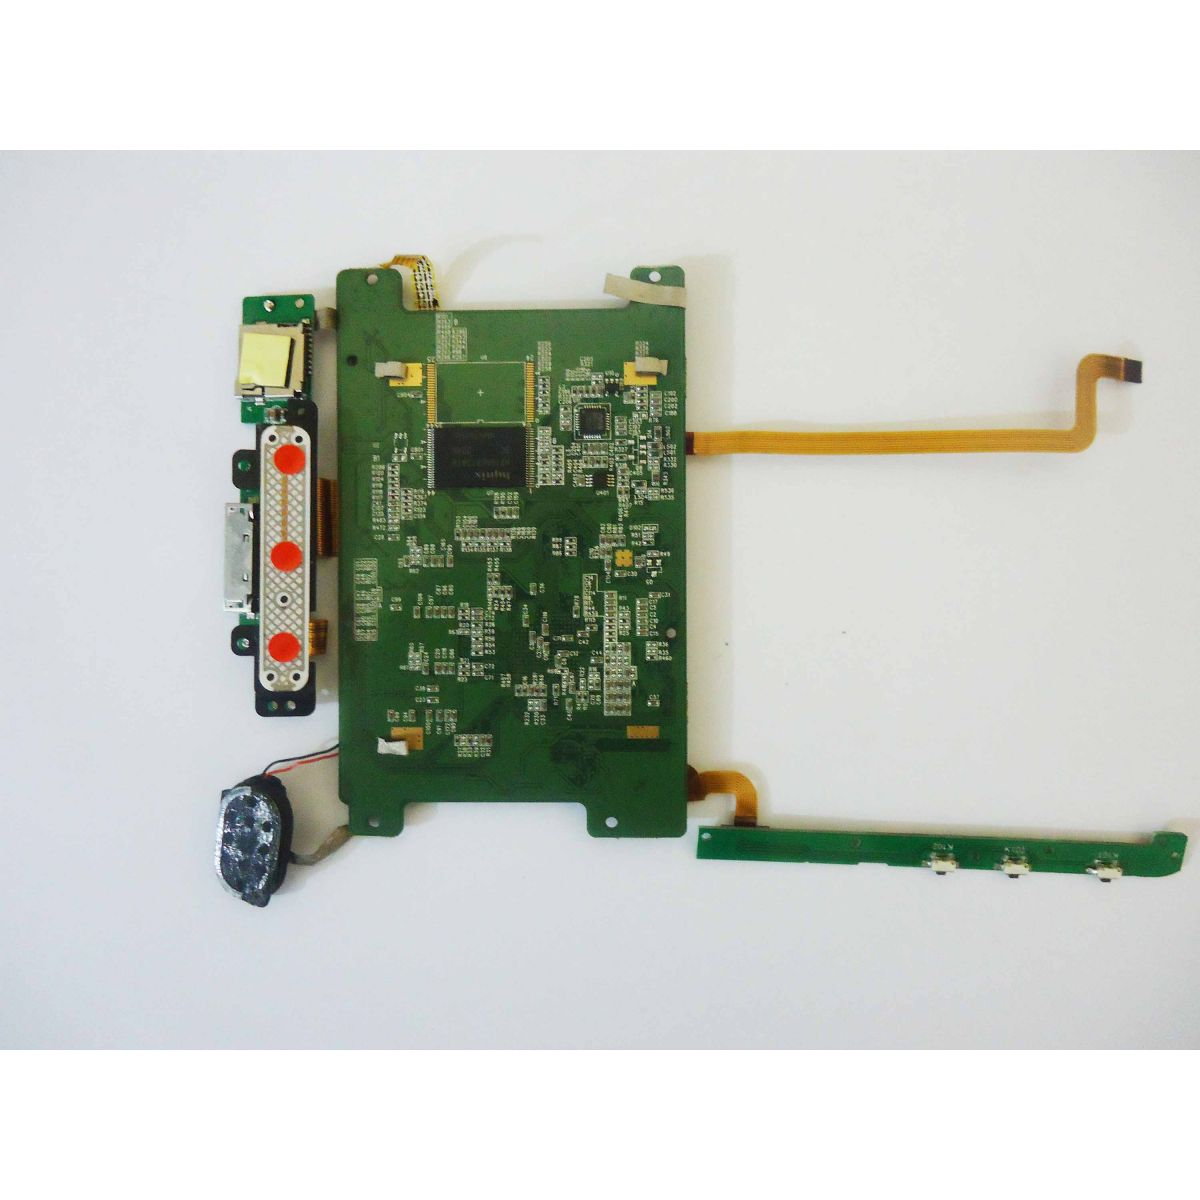 Placa Logica Tablet INET-TEK-Co-S10003-A V1.3